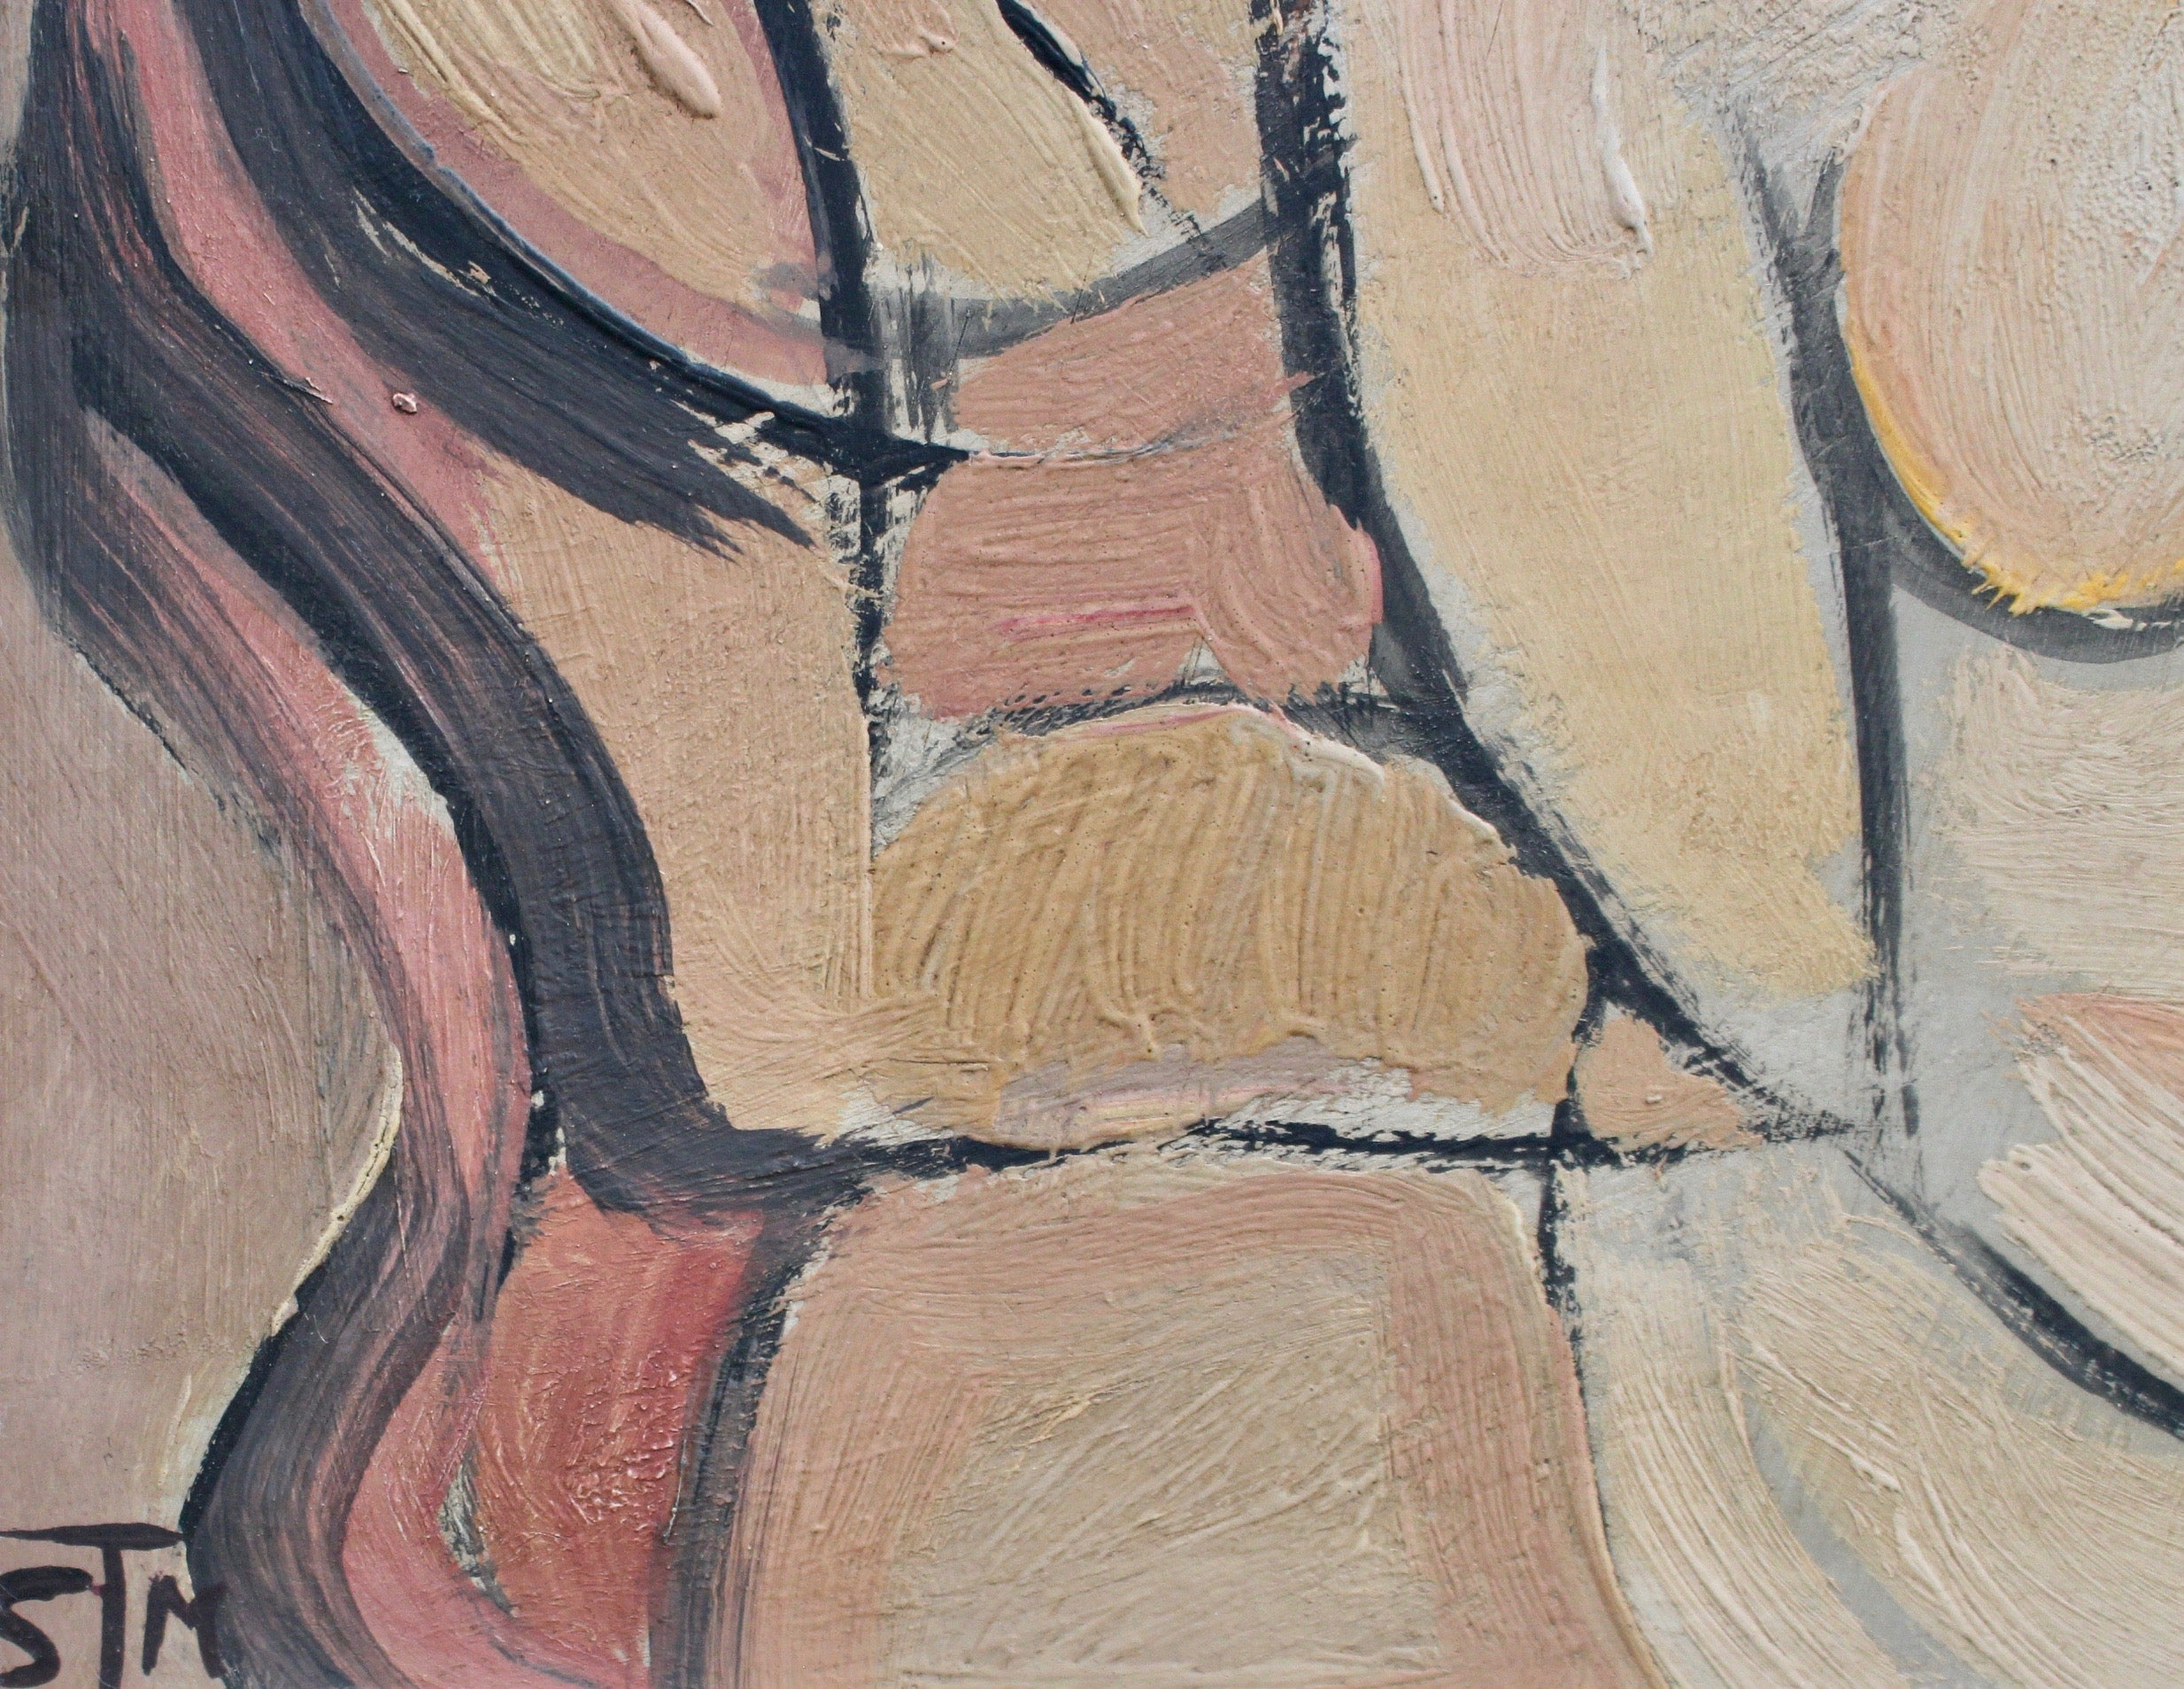 'Portrait of Seated Nudes' by STM (circa 1940s - 1960s)